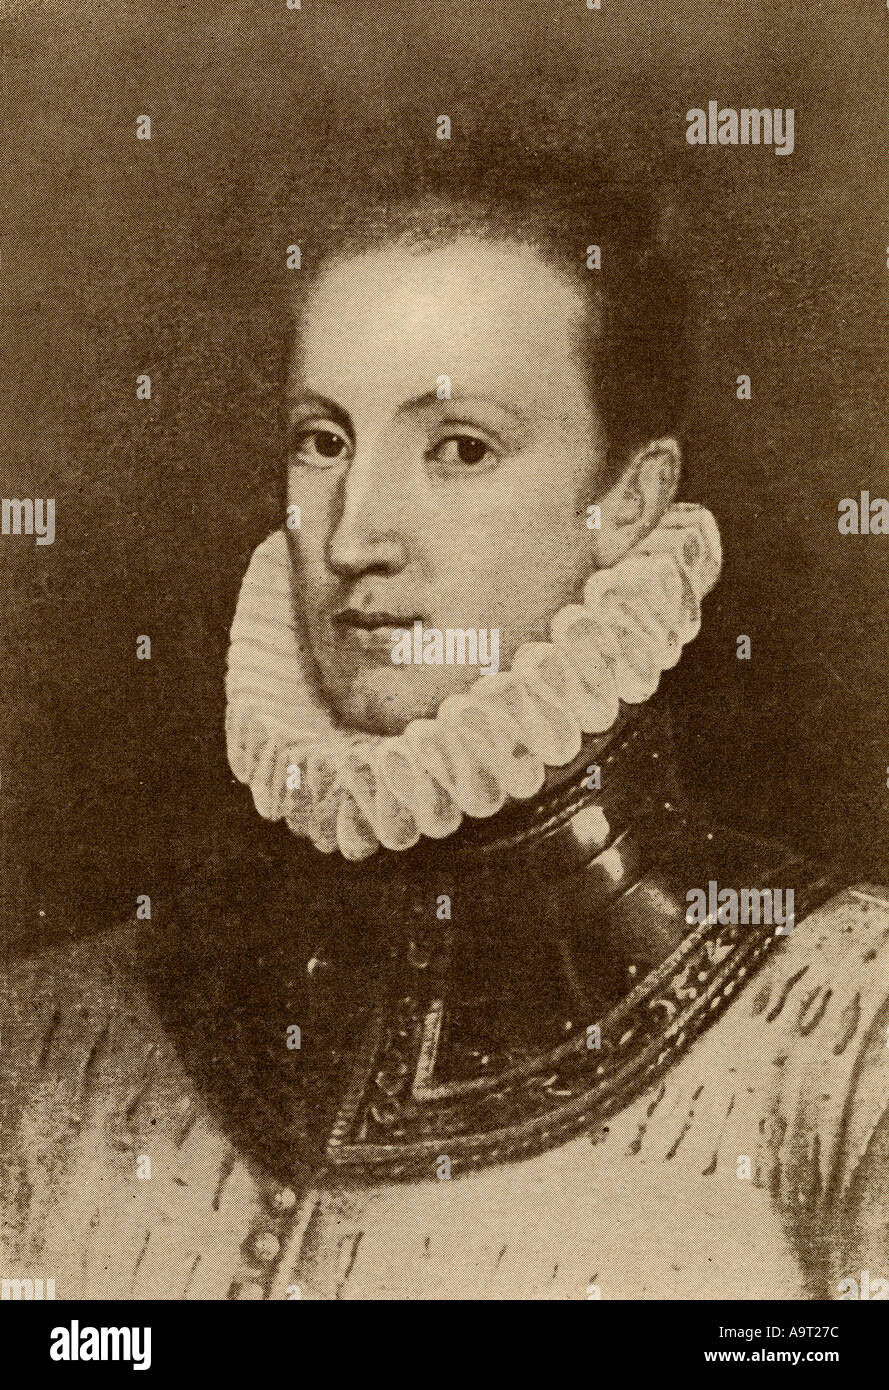 Sir Philip Sidney, 1554 -1586. English poet, courtier, scholar, and soldier. - Stock Image